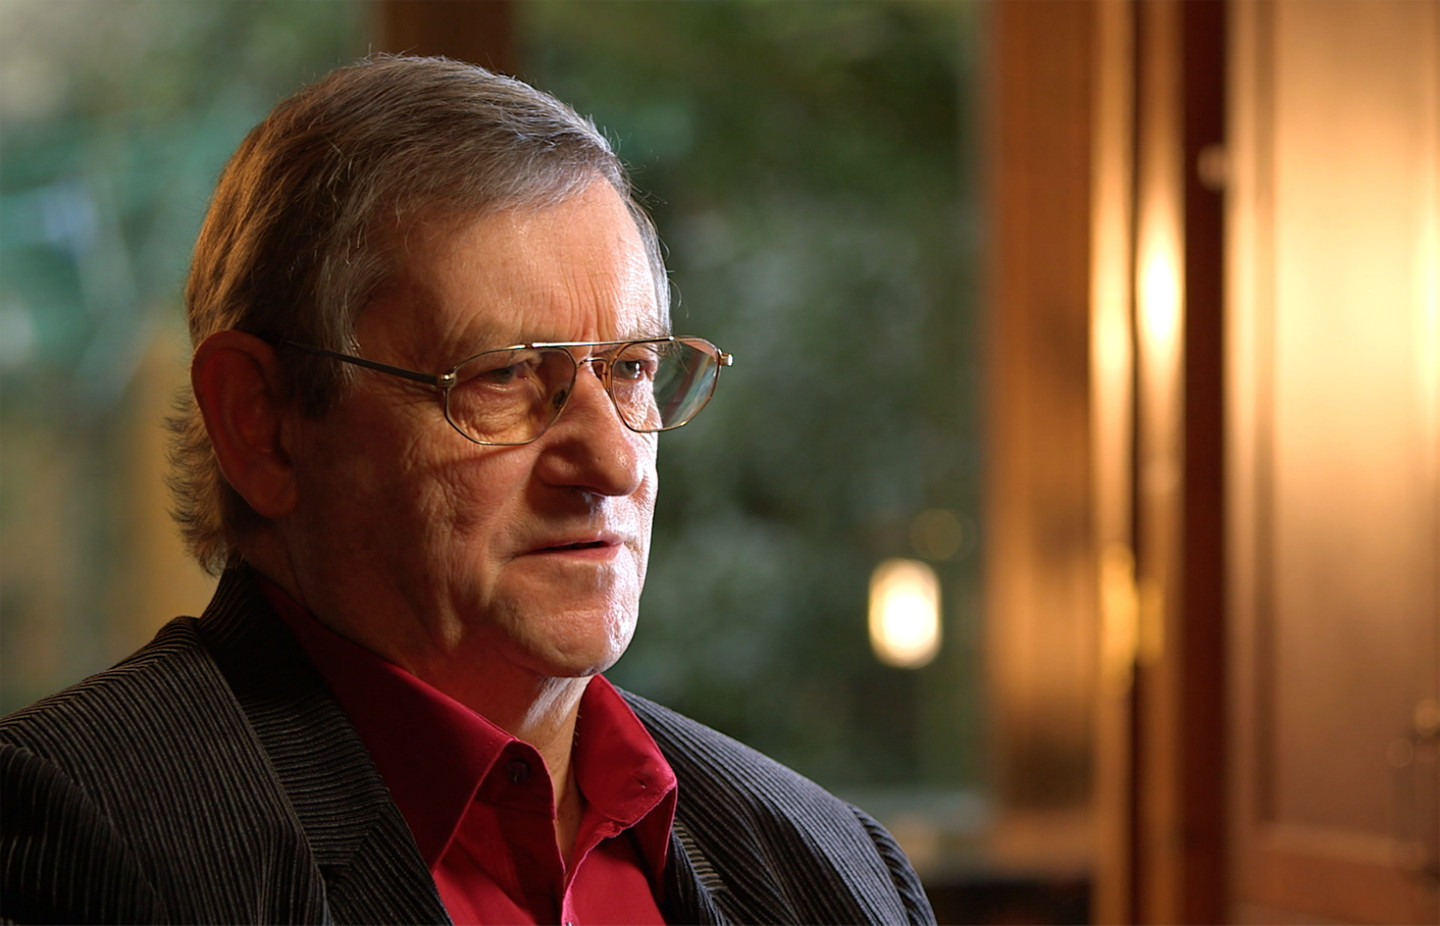 Dr. Norman Davis, interviewee on John Paul 2: Liberating a Continent, the Fall of Communism